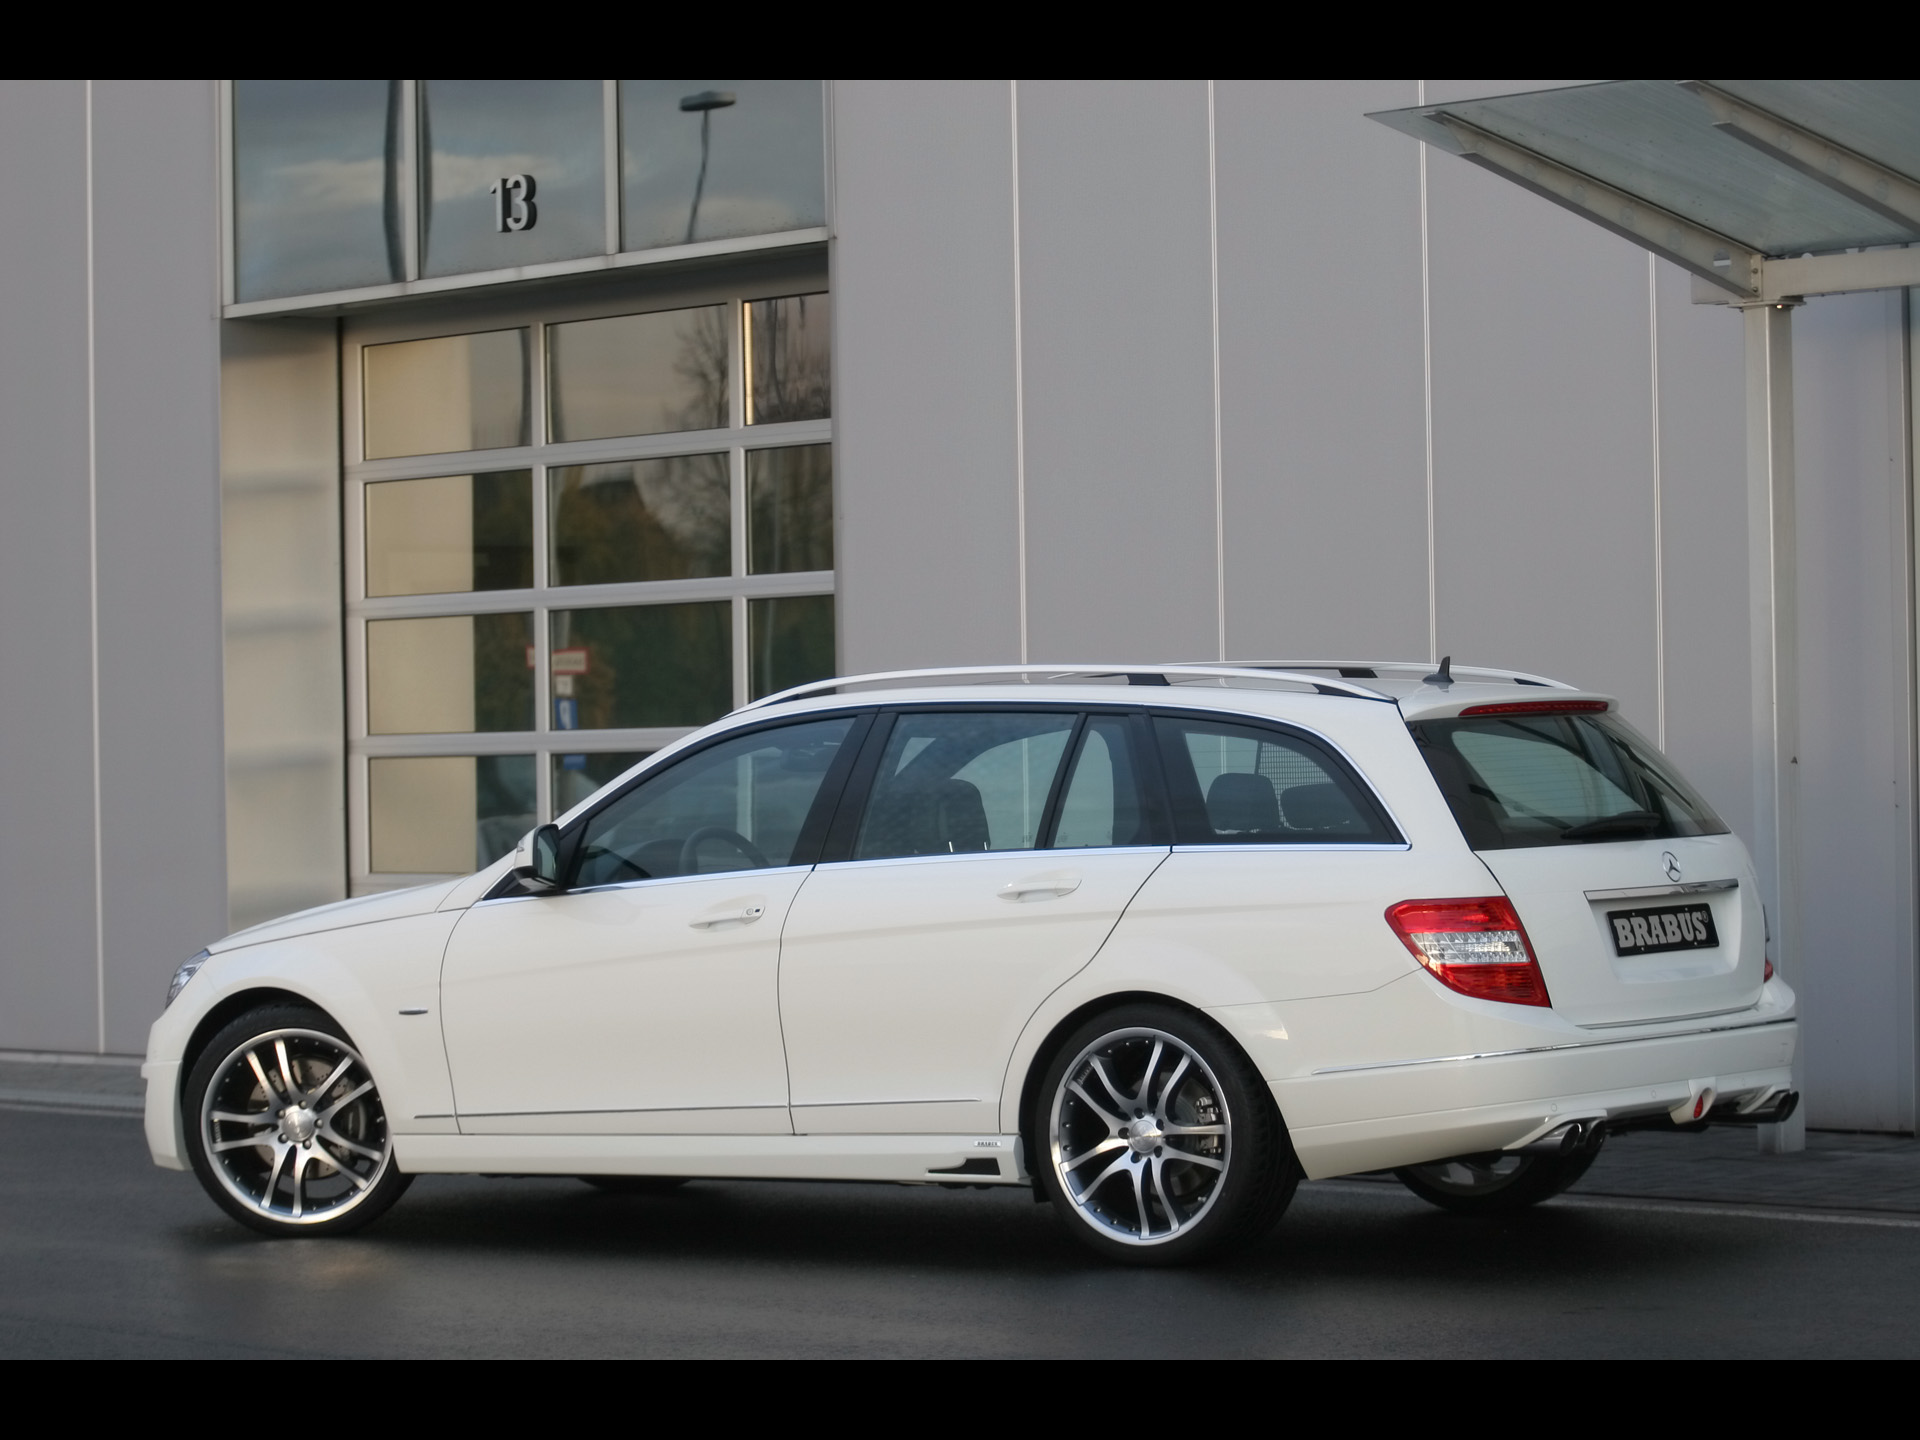 elegance wallpaper htm speed mercedes rear angle cdi c benz estate class klm